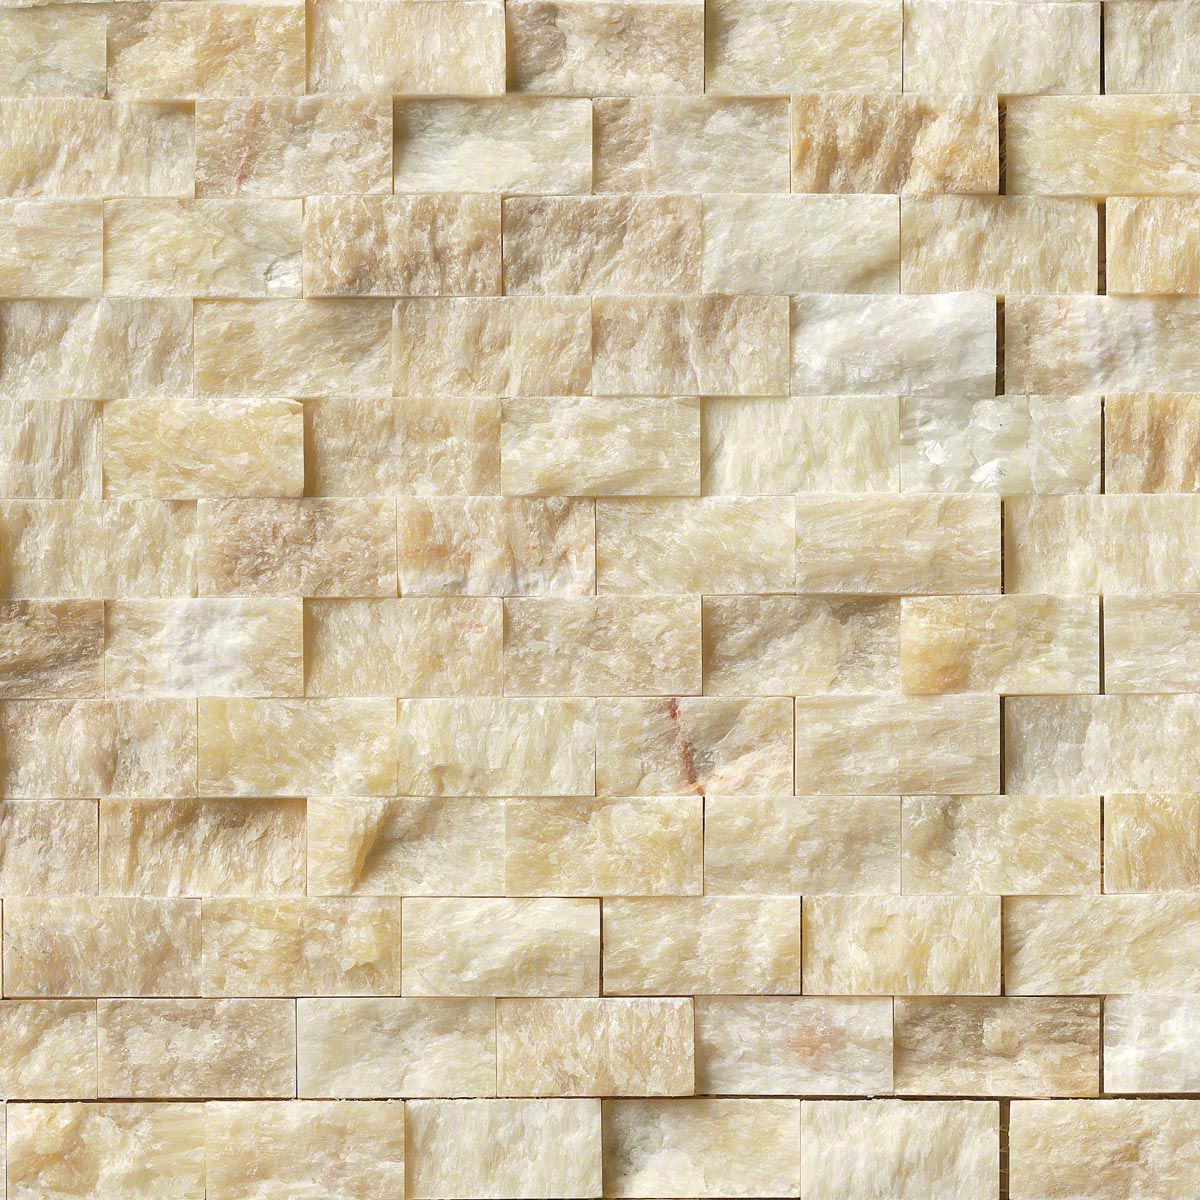 Soleil Onyx 1x2 Splitface In 12x12 Mesh Stacked Stone Tile Stacked